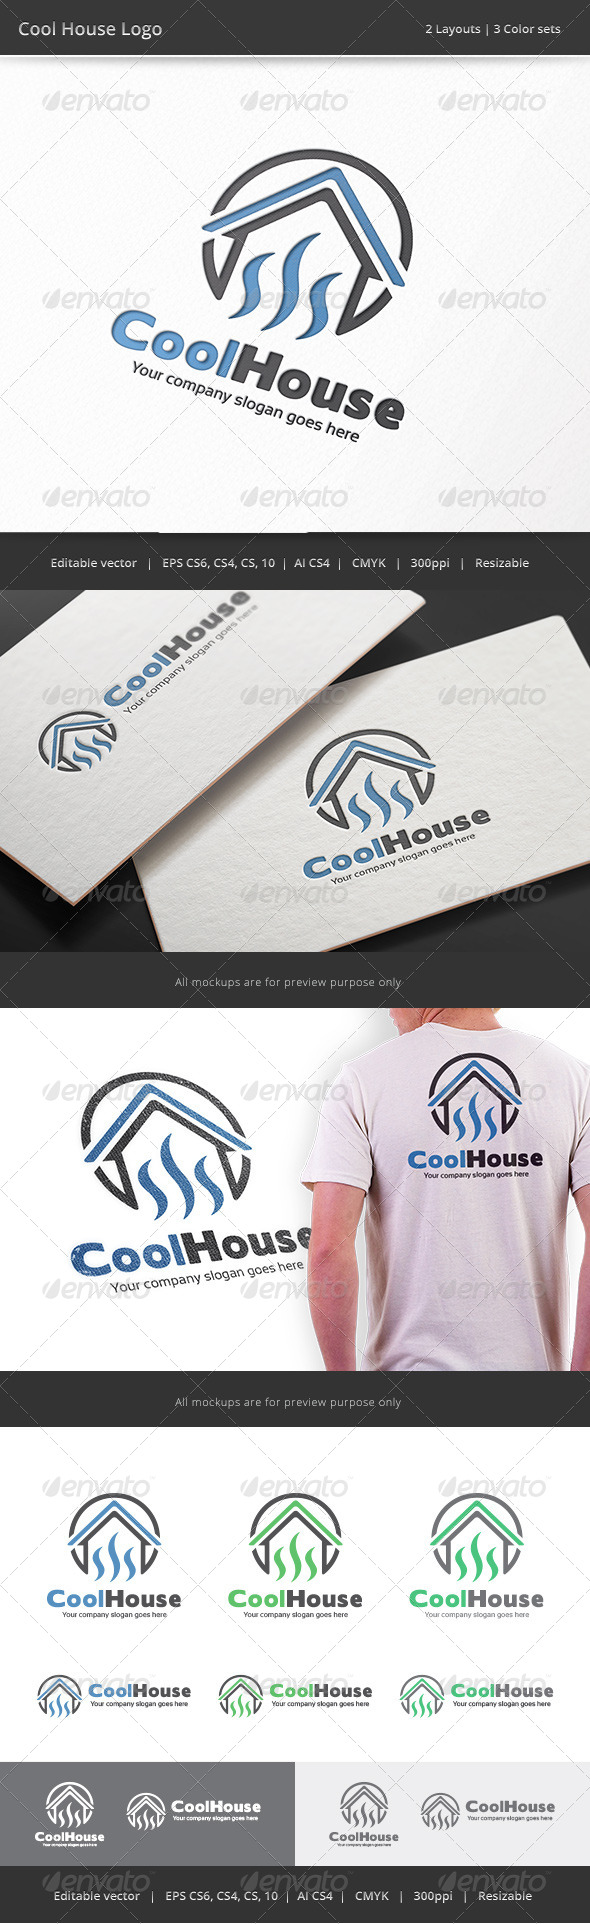 GraphicRiver Cool House Logo 8186005